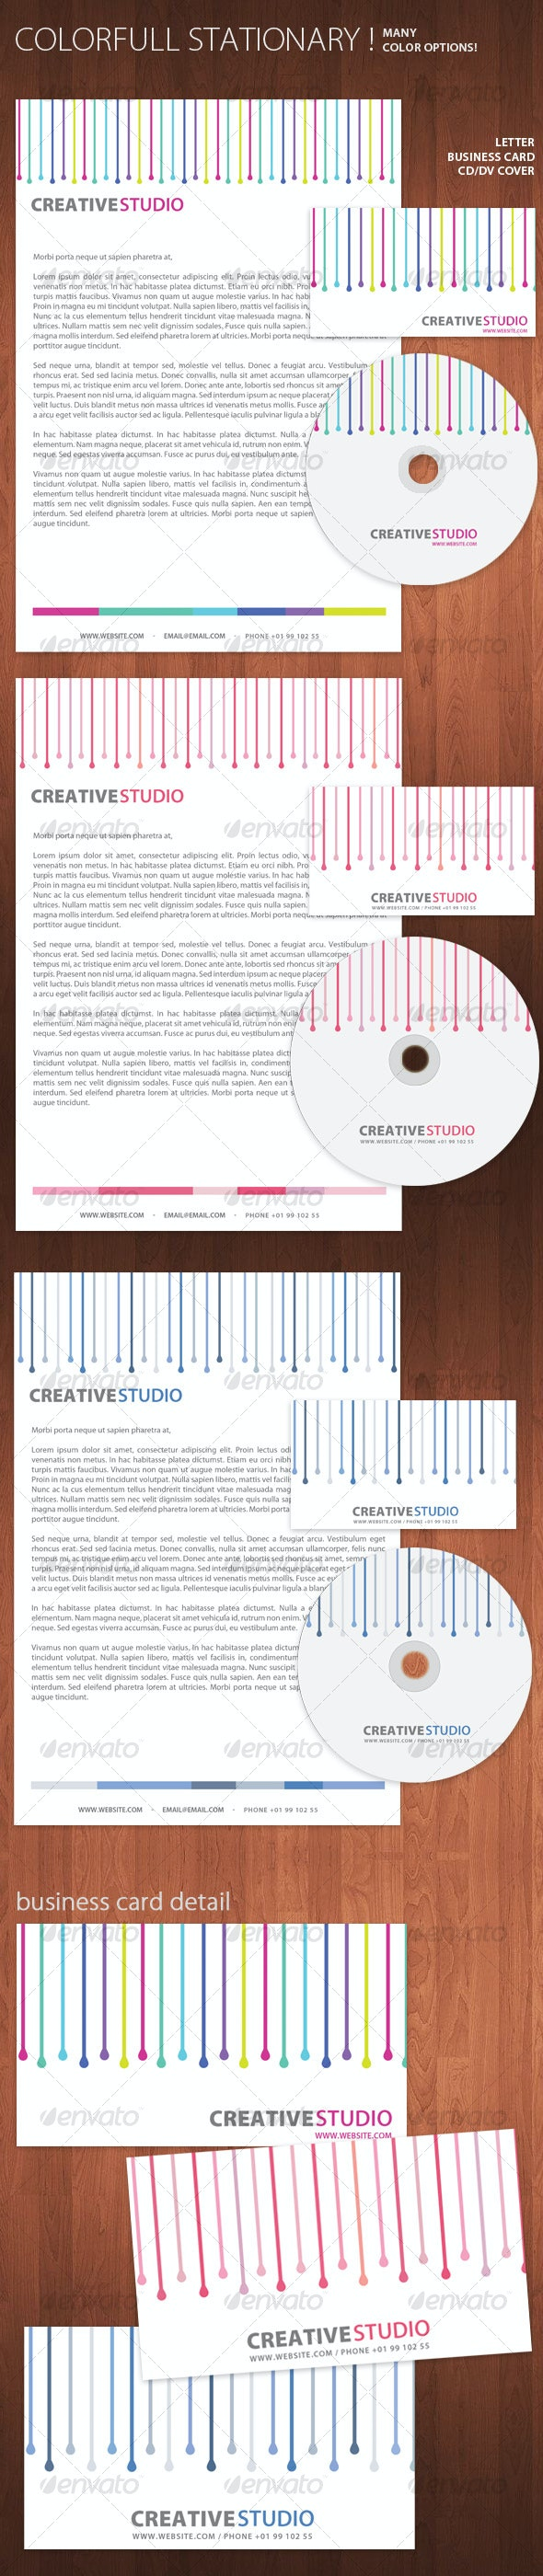 Colorful Stationary - Business Card + Letter + CD - Miscellaneous Print Templates